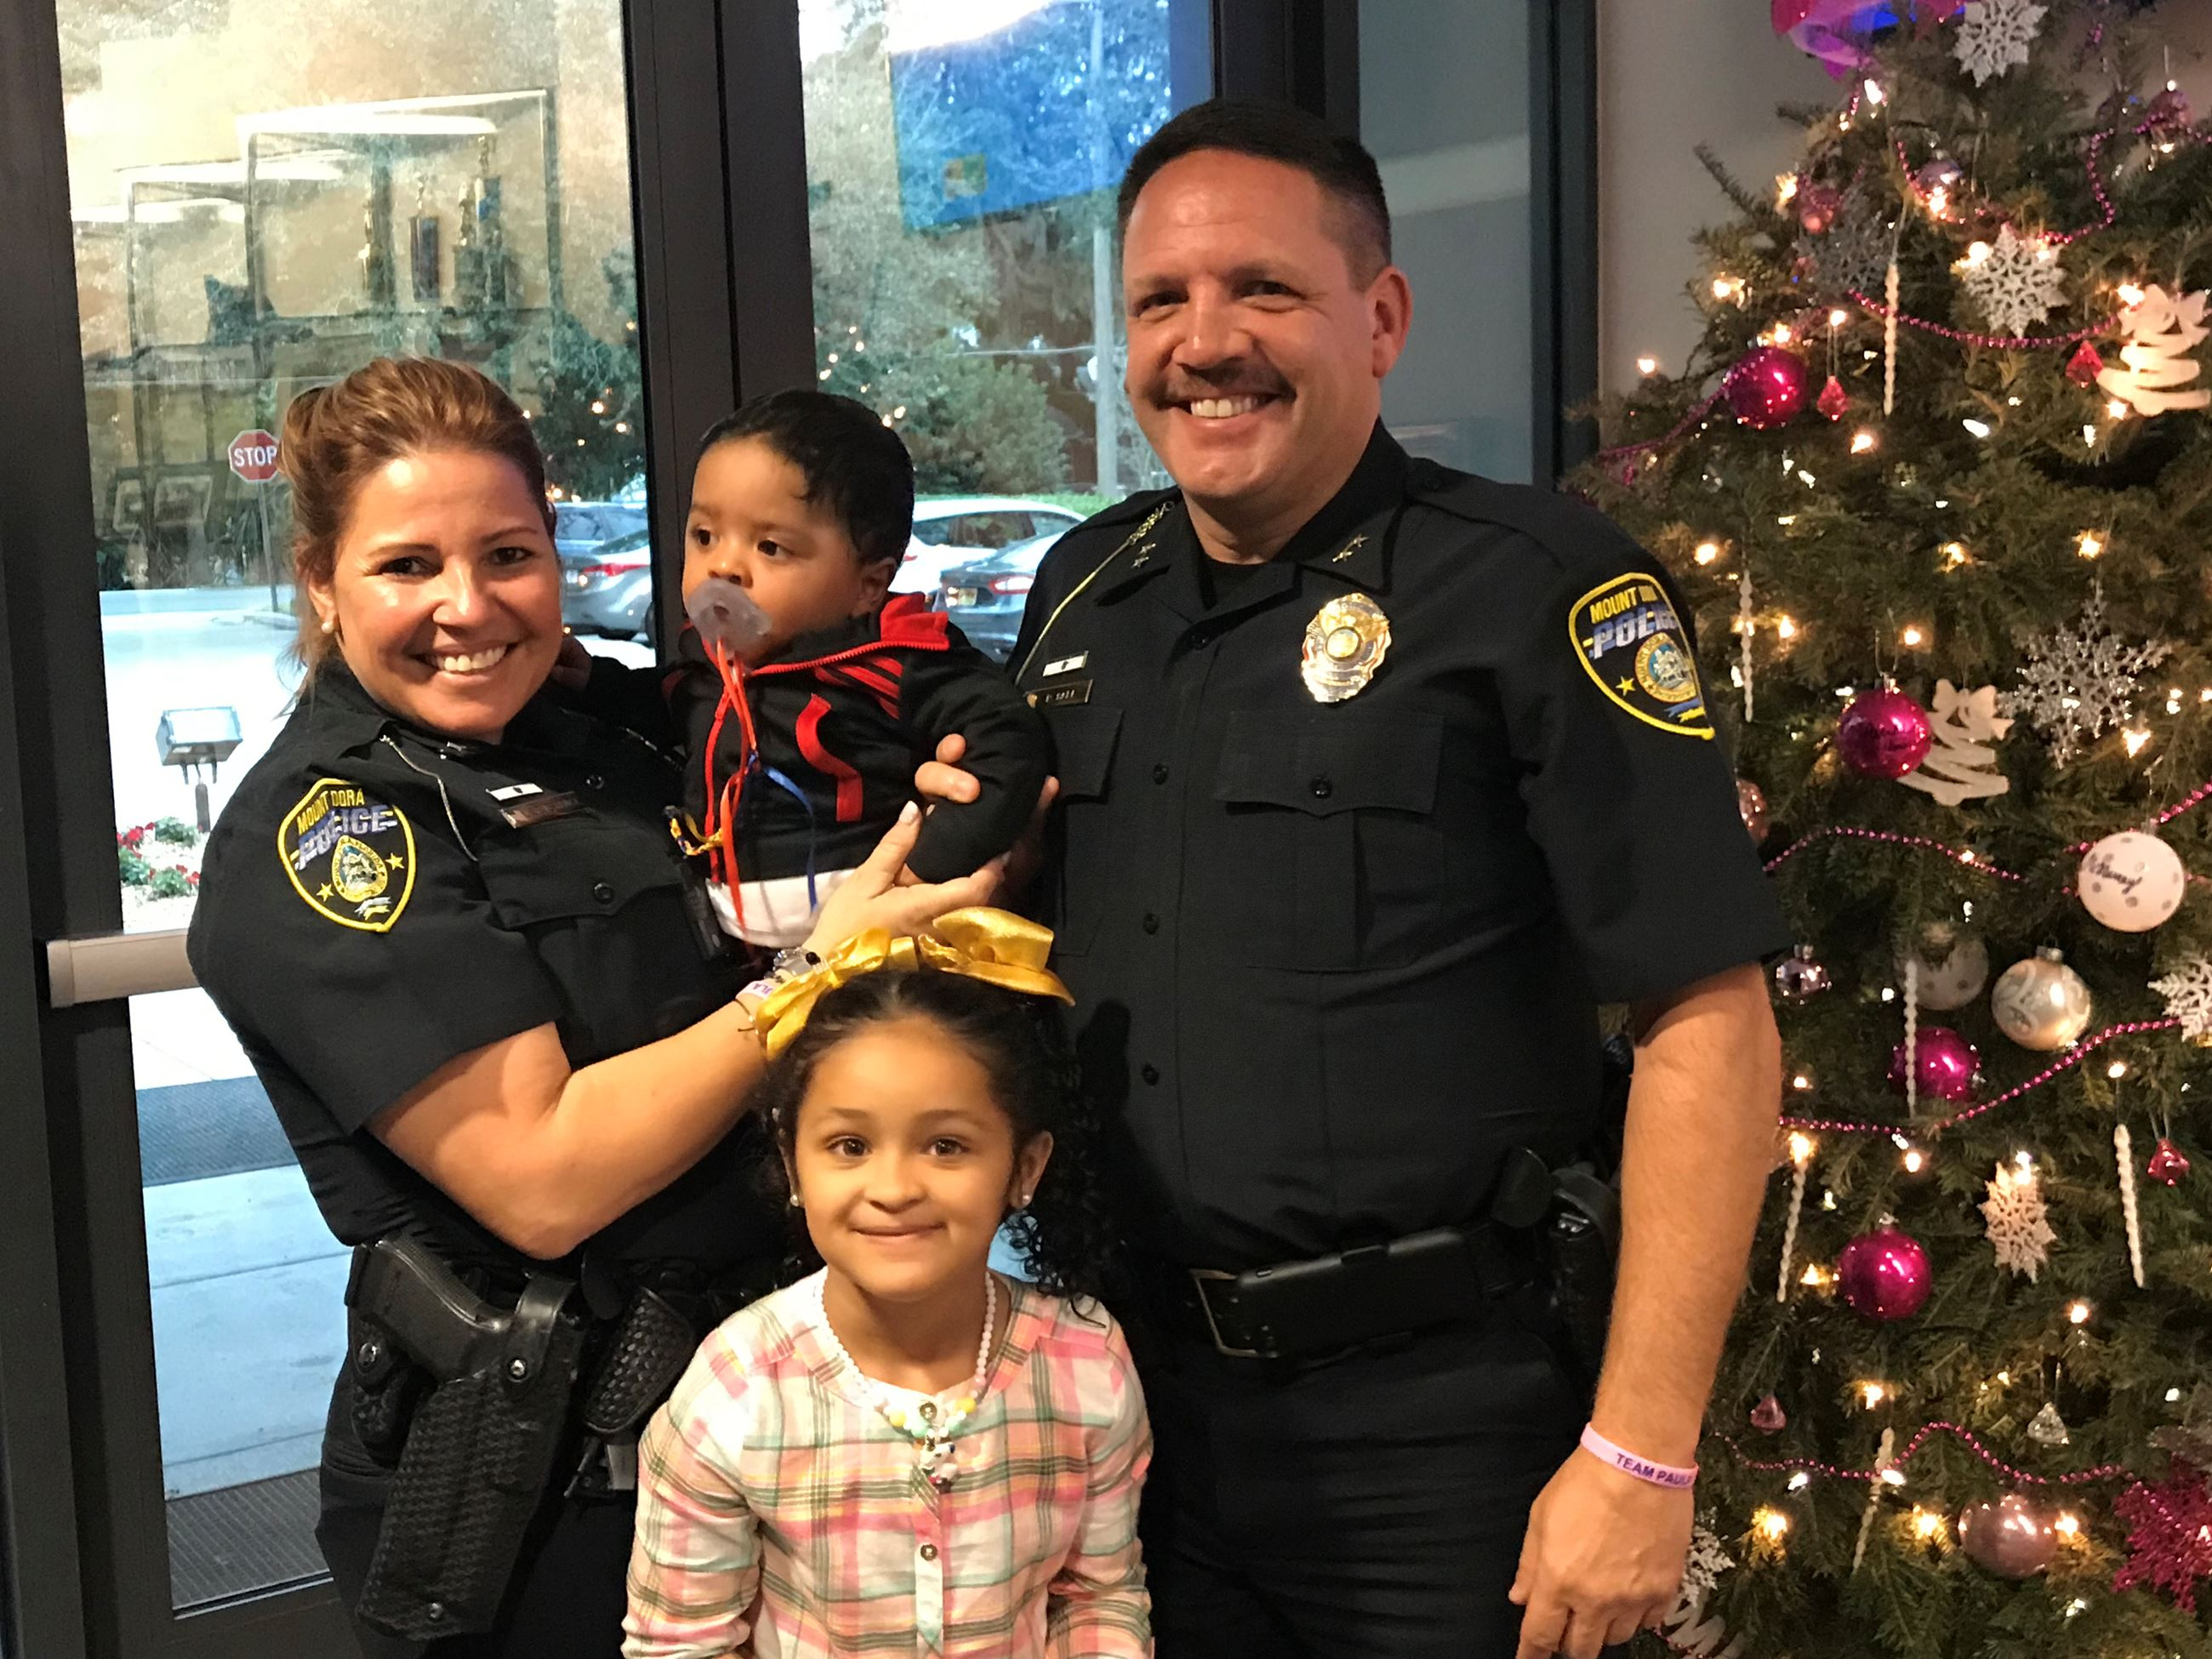 Officer Severance and Deputy Chief Bell with family getting presents